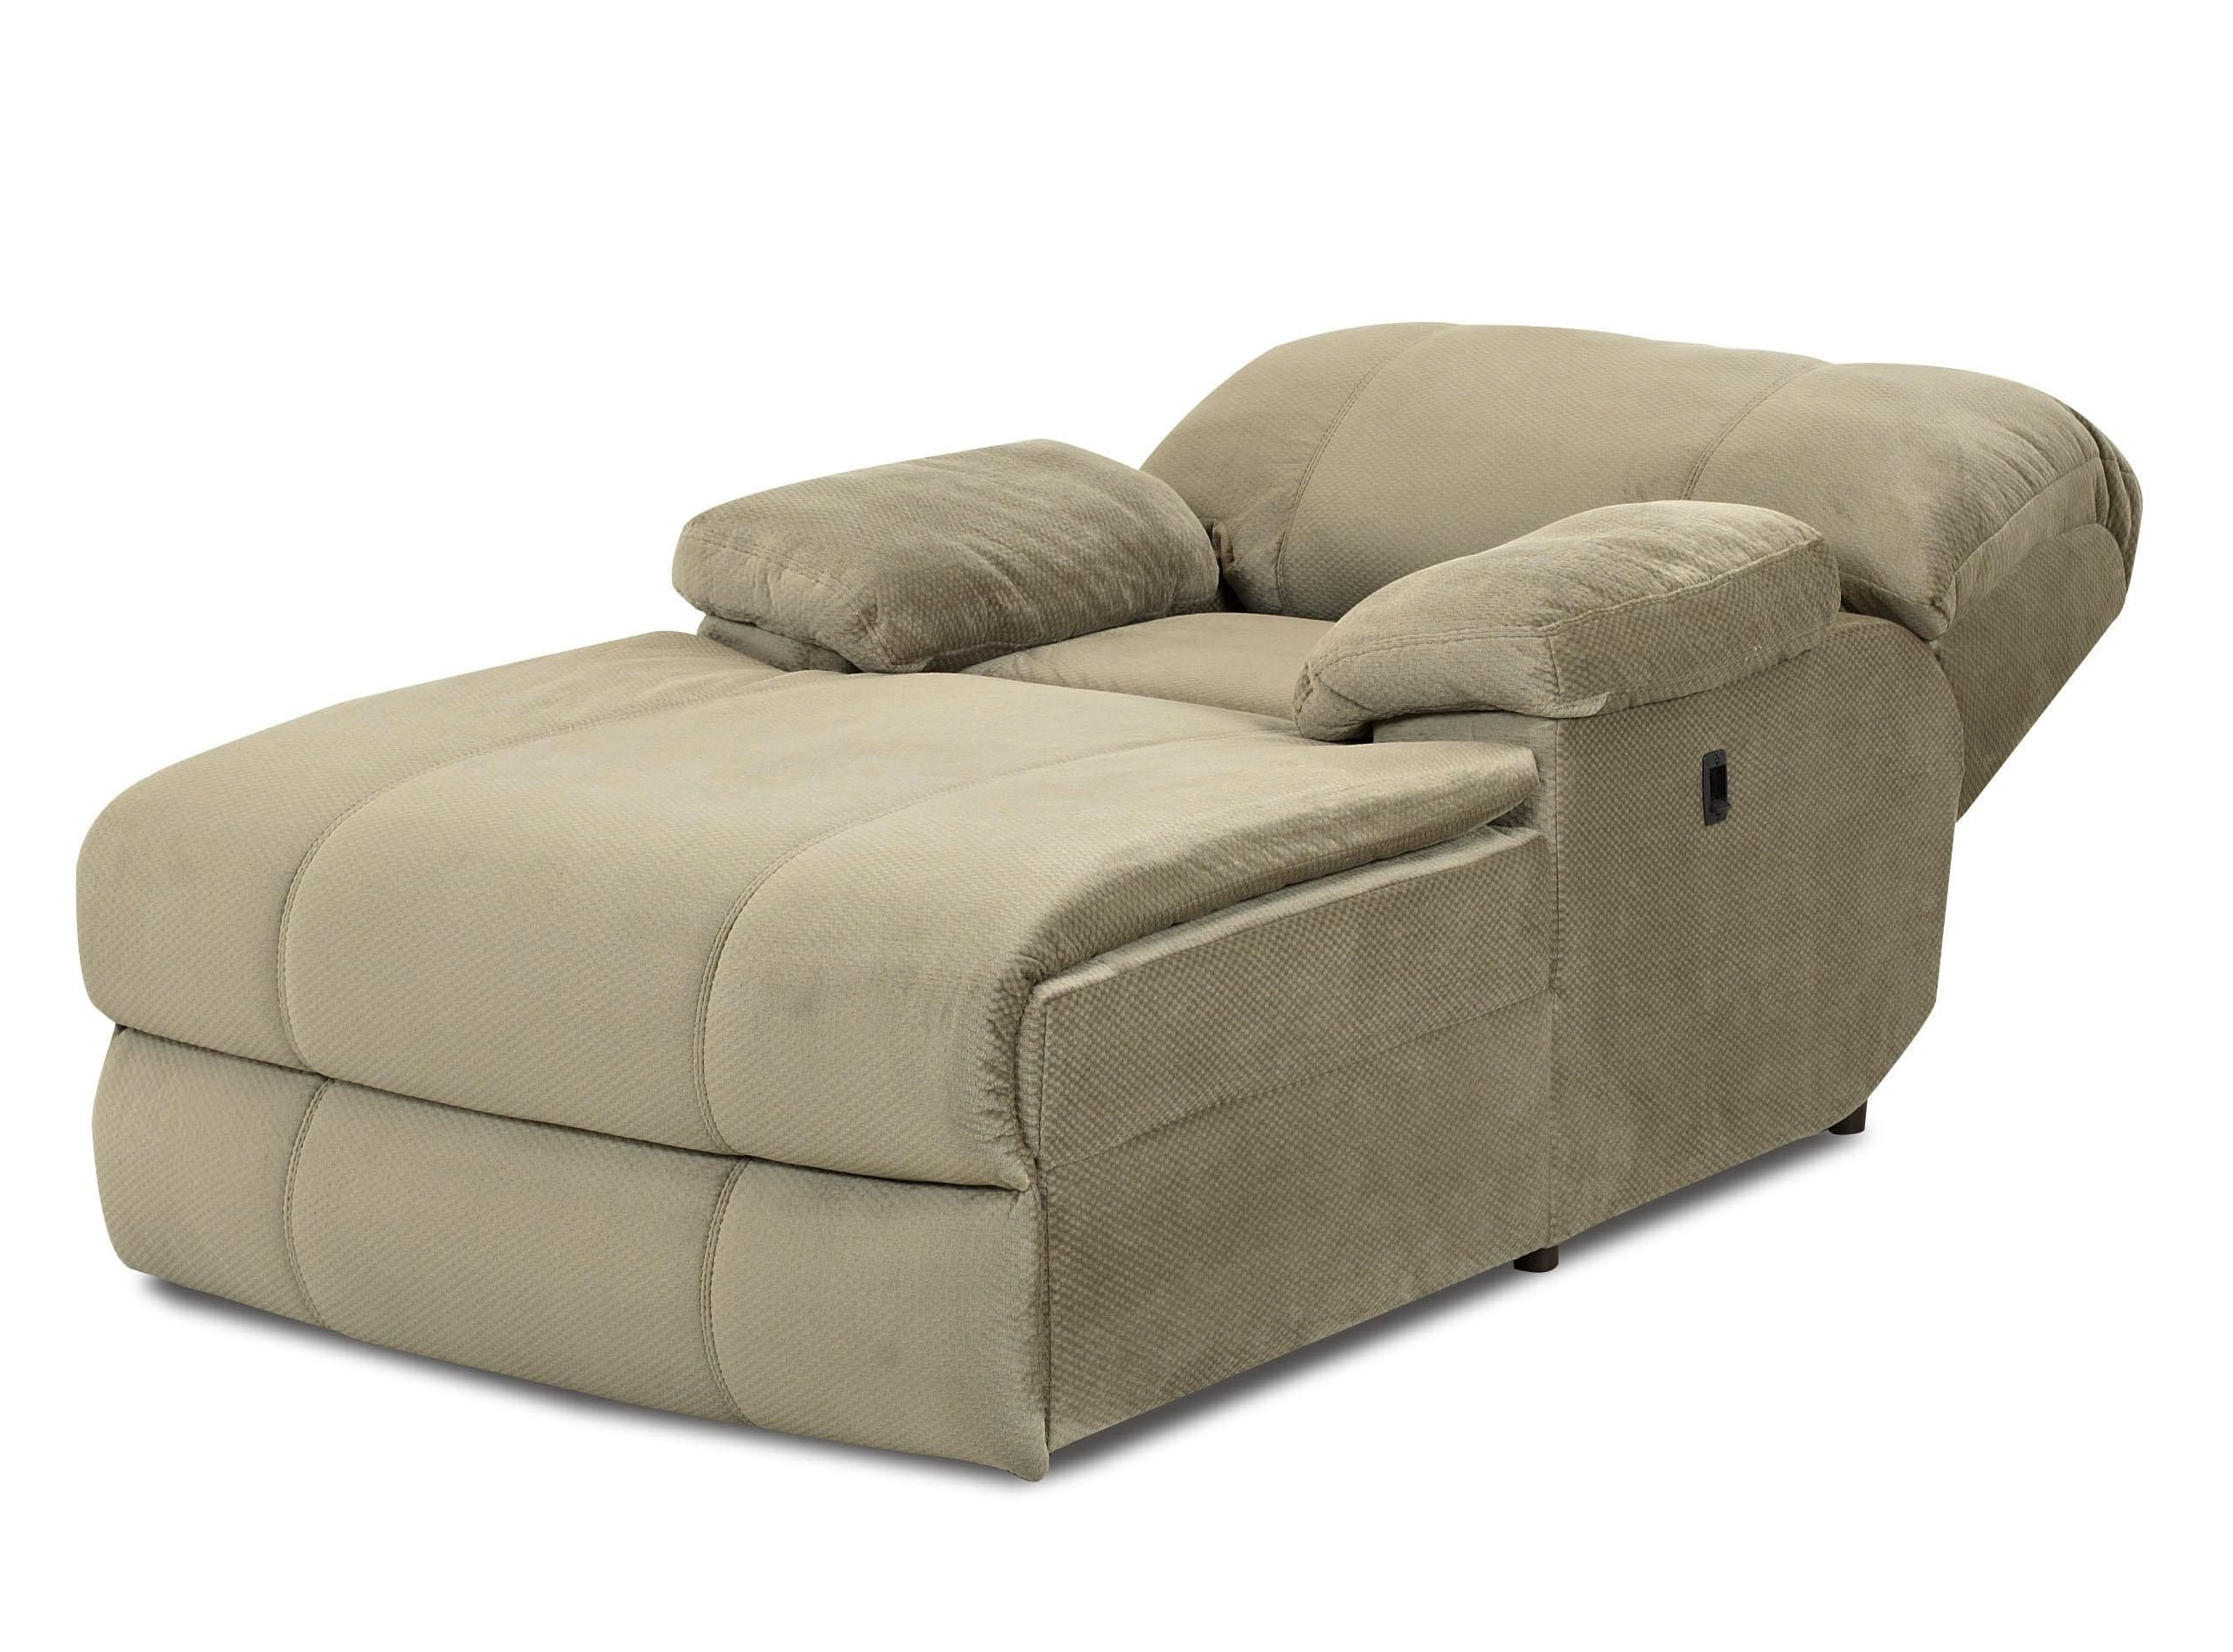 Widely Used Indoor Oversized Chaise Lounge (View 14 of 15)